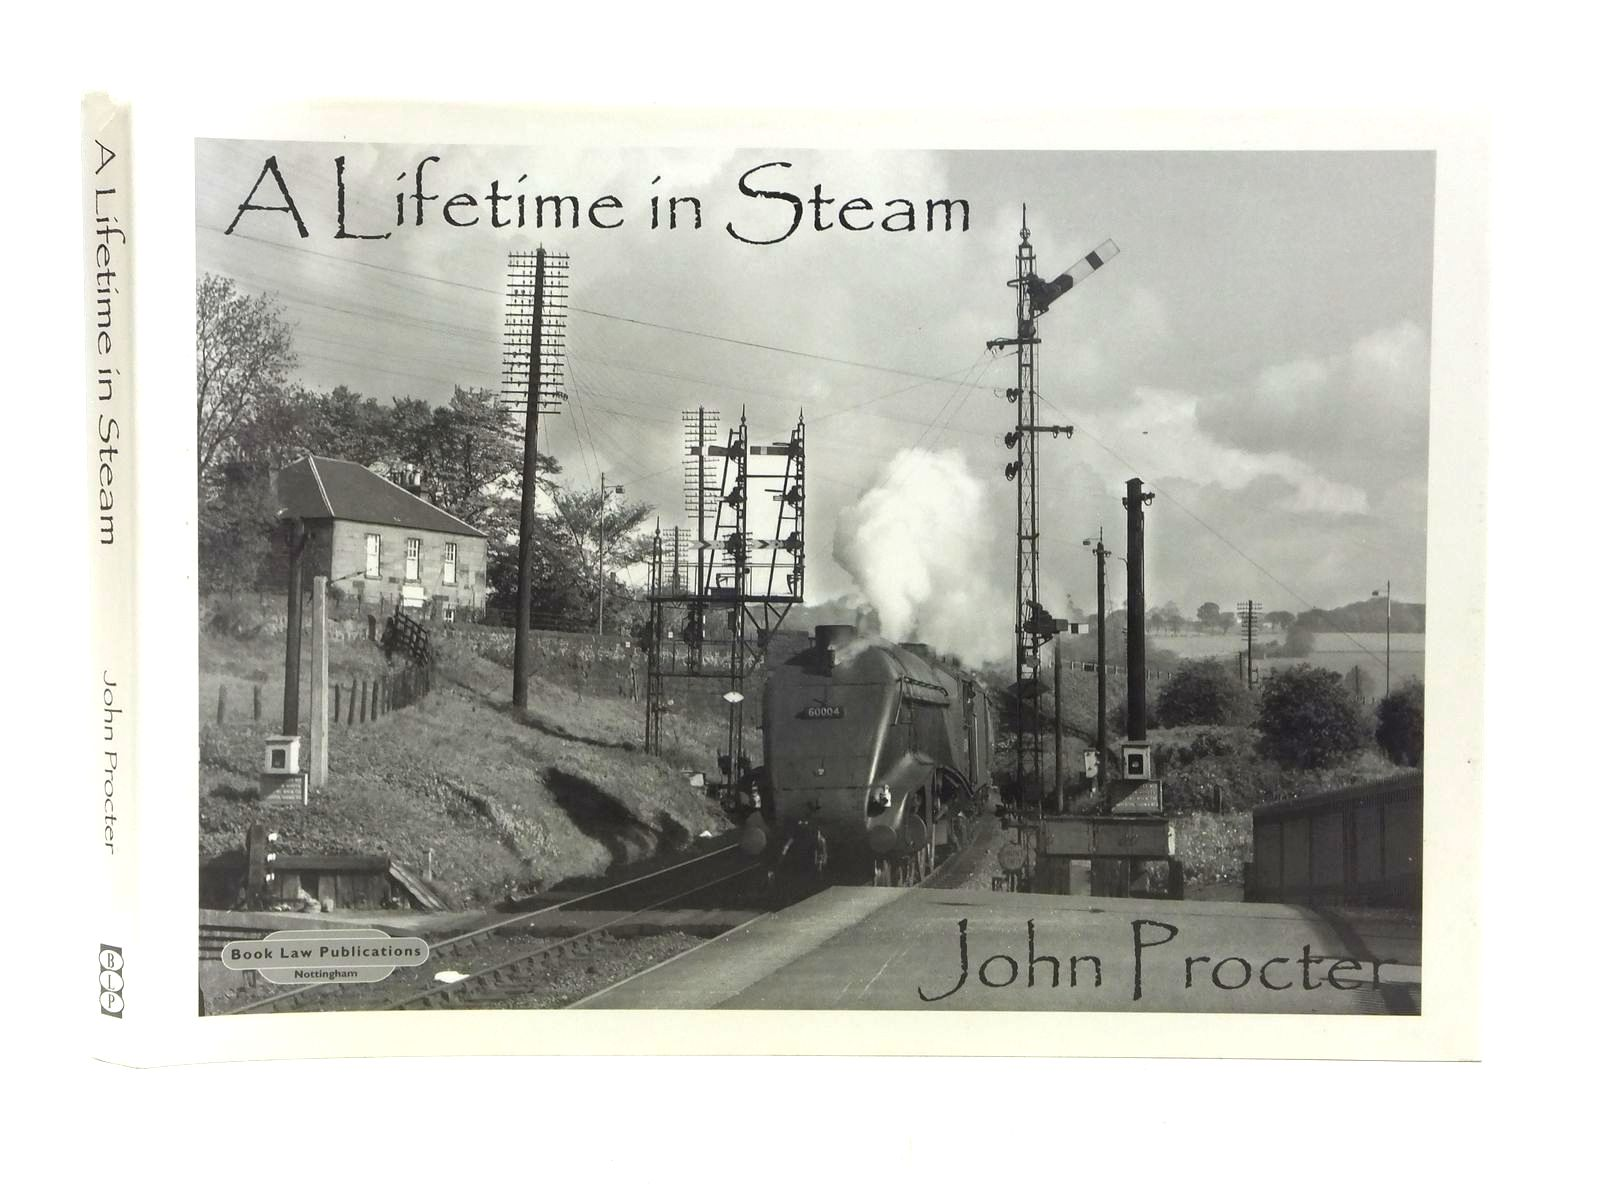 Photo of A LIFETIME IN STEAM written by Procter, John published by Book Law Publications (STOCK CODE: 2118806)  for sale by Stella & Rose's Books